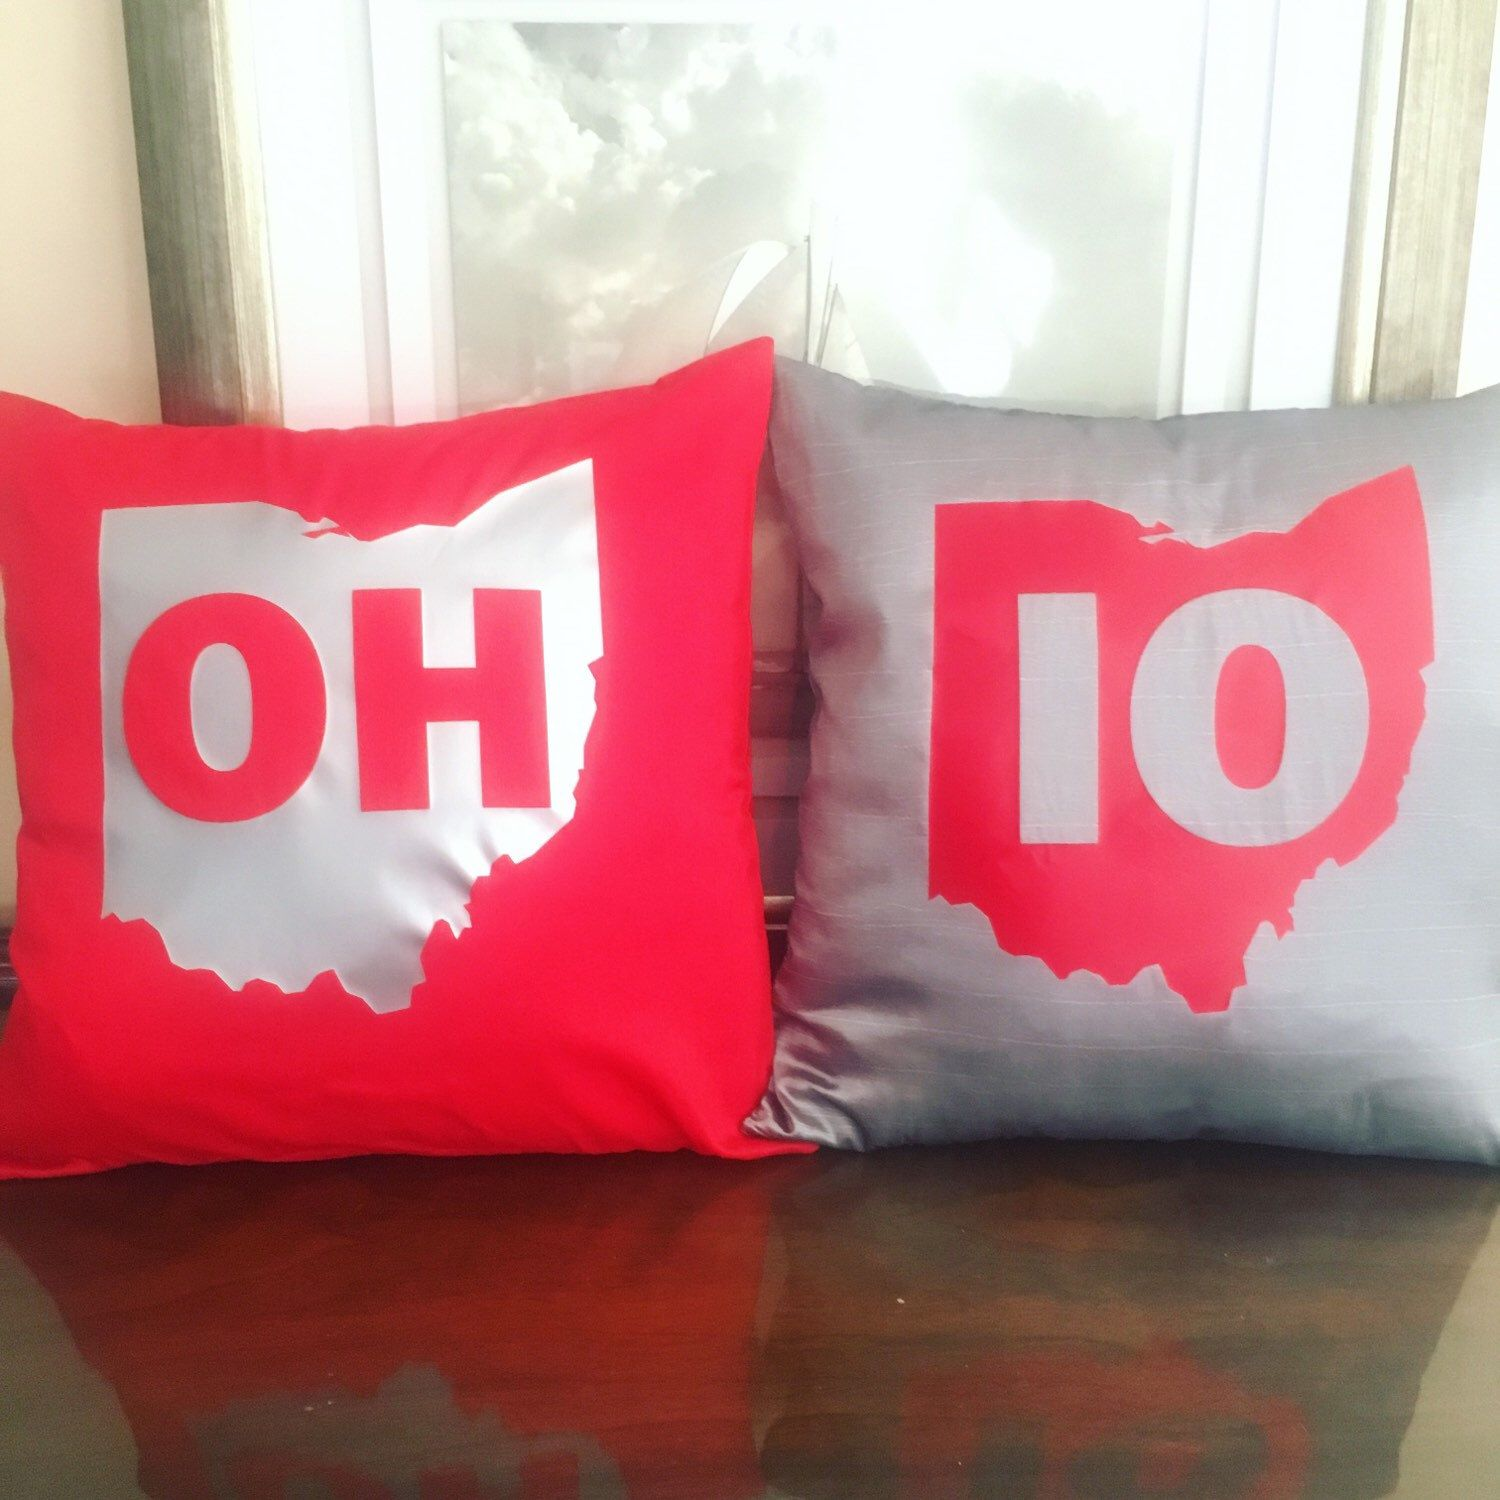 Sale Ohio State Buckeyes Oh Io Matching Pillow Set By Peachteamonograms On Etsy Https